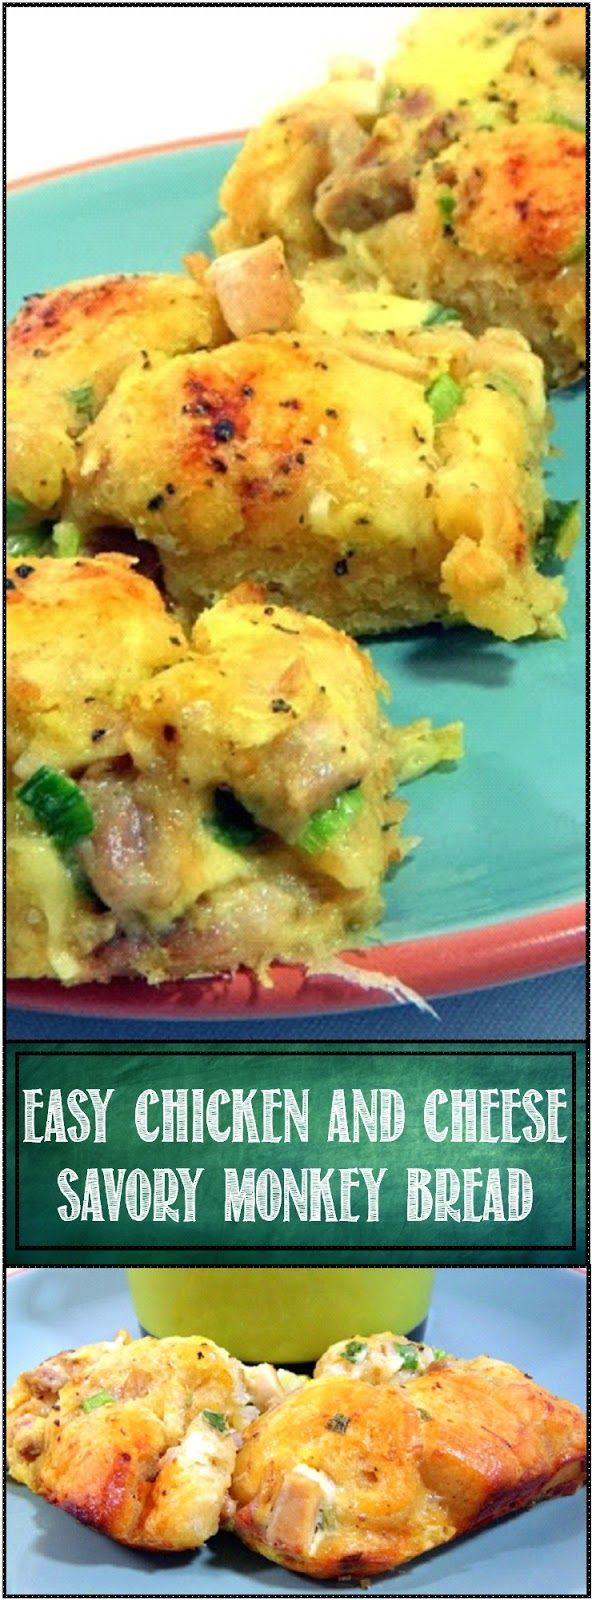 Easy Chicken Cheese Savory Monkey Bread...  I made this and served it as the sandwich half of a Soup and Sandwich to brighten up a bowl of leftover soup. BUT, what an amazing breakfast this would make! Made especially easy with a tube of refrigerator biscuits, but it is the taste that will make you want to make again and again. May be the PERFECT use for a rotisserie Chicken!   Chicken Cheese Savory Monkey Bread - YUM!!!